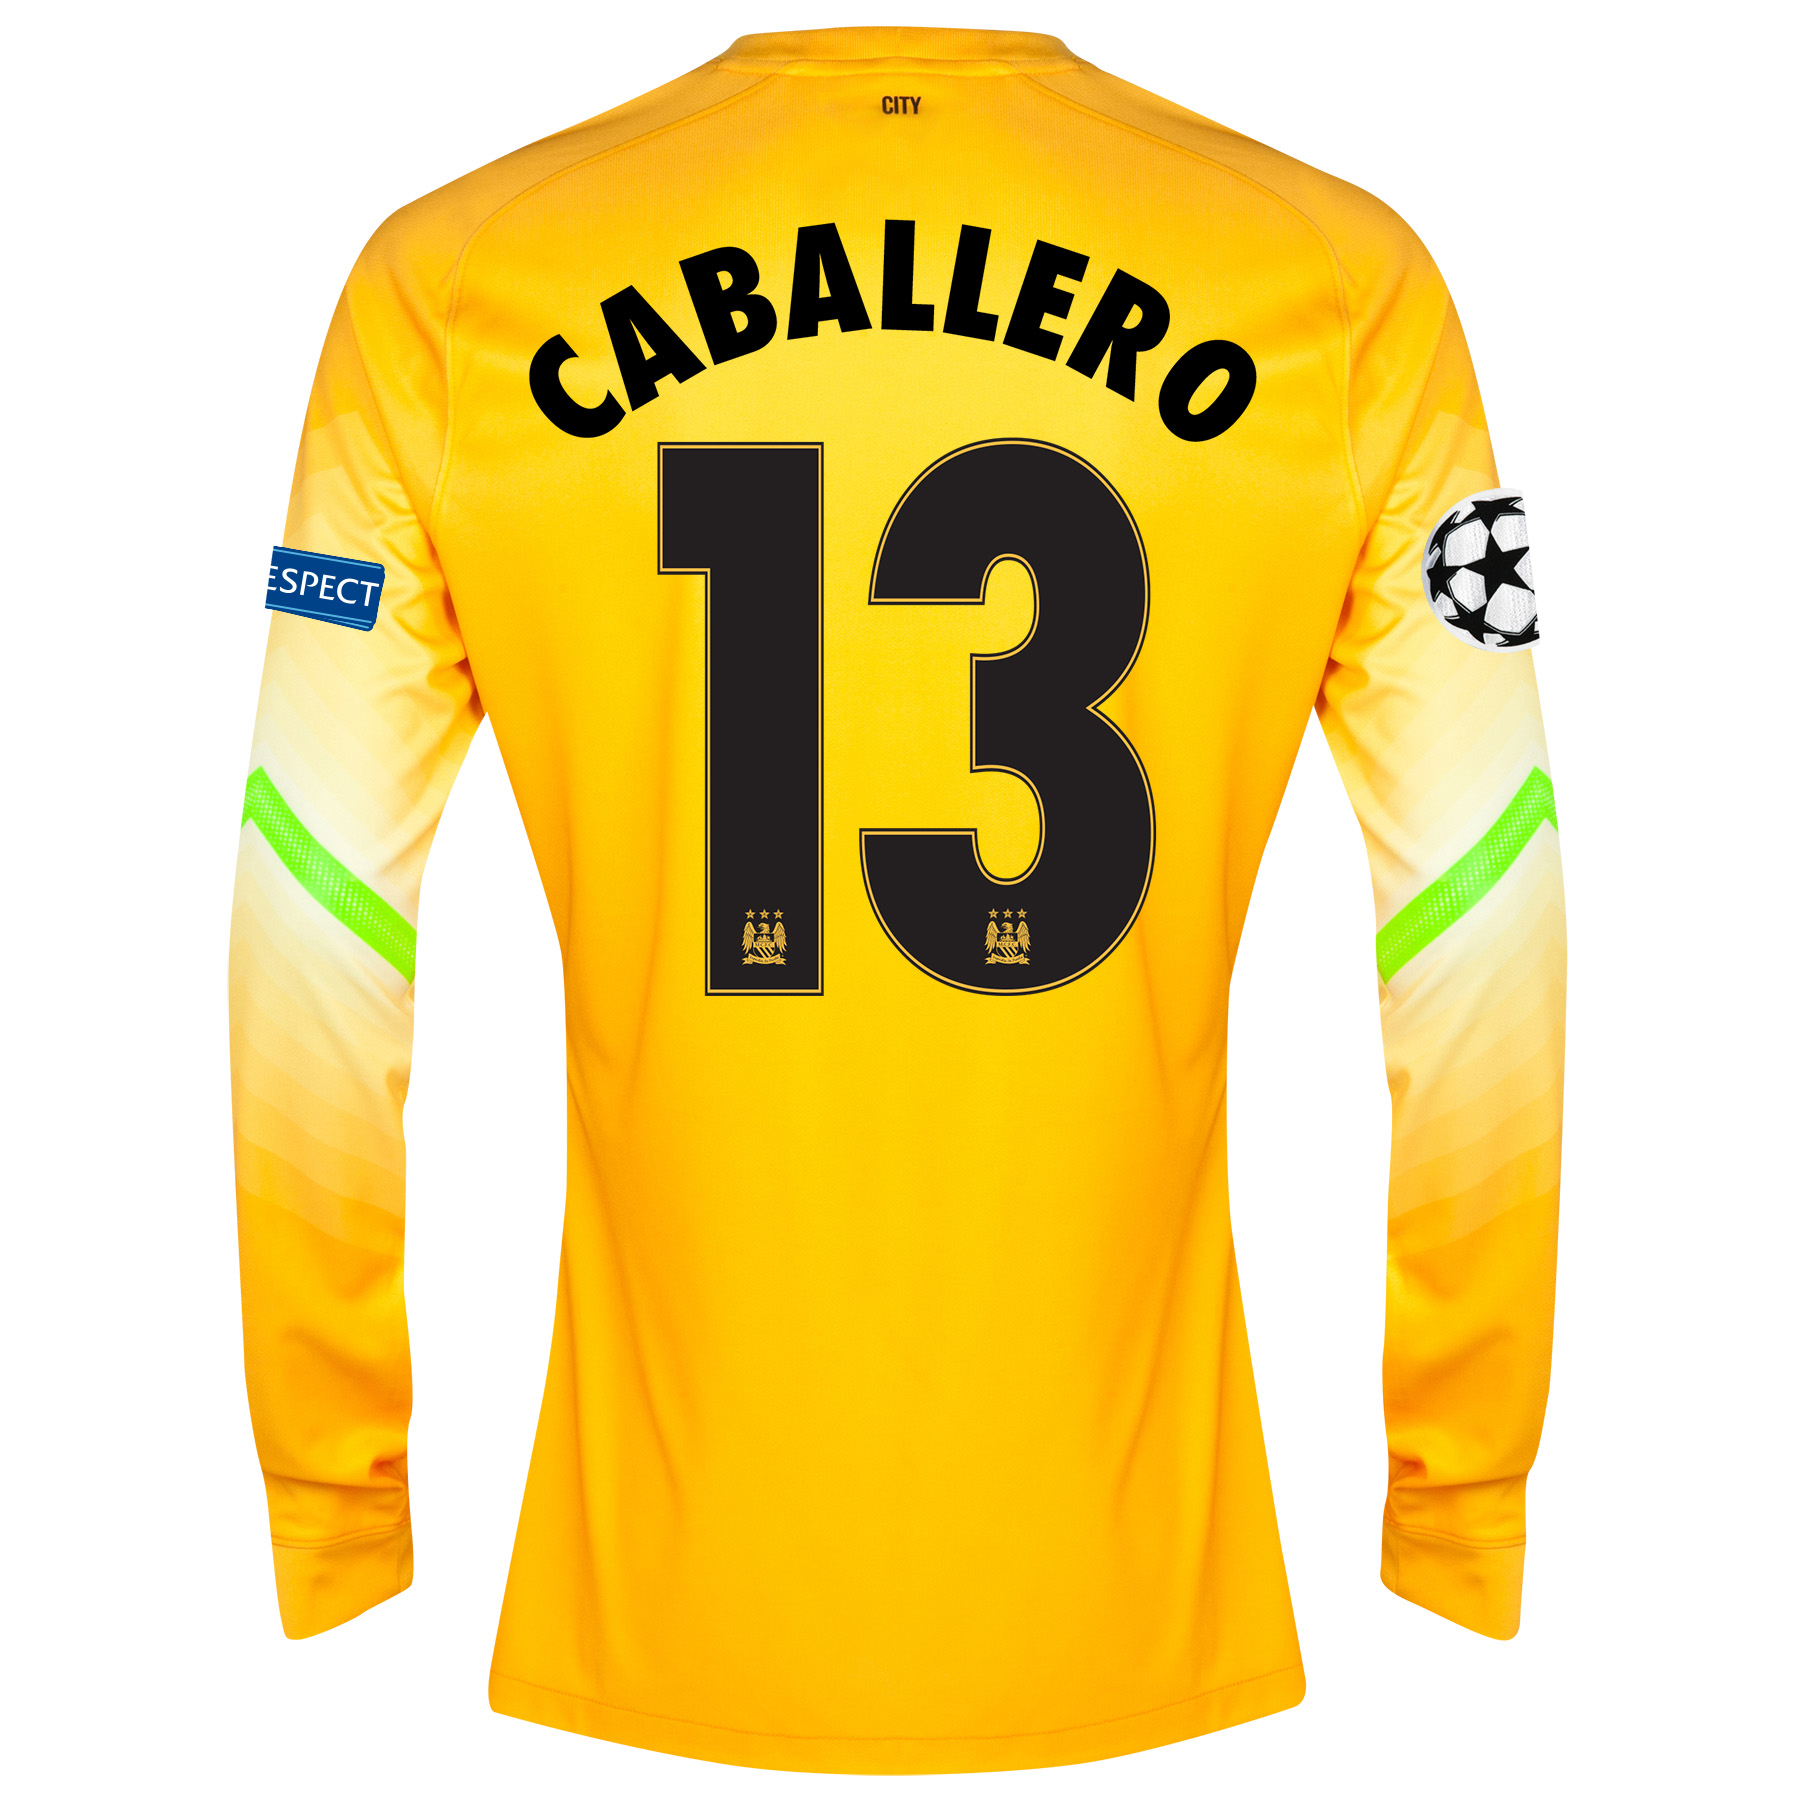 Manchester City UEFA Champions League Change Goalkeeper Shirt 2014/15 Gold with Caballero 13 printing